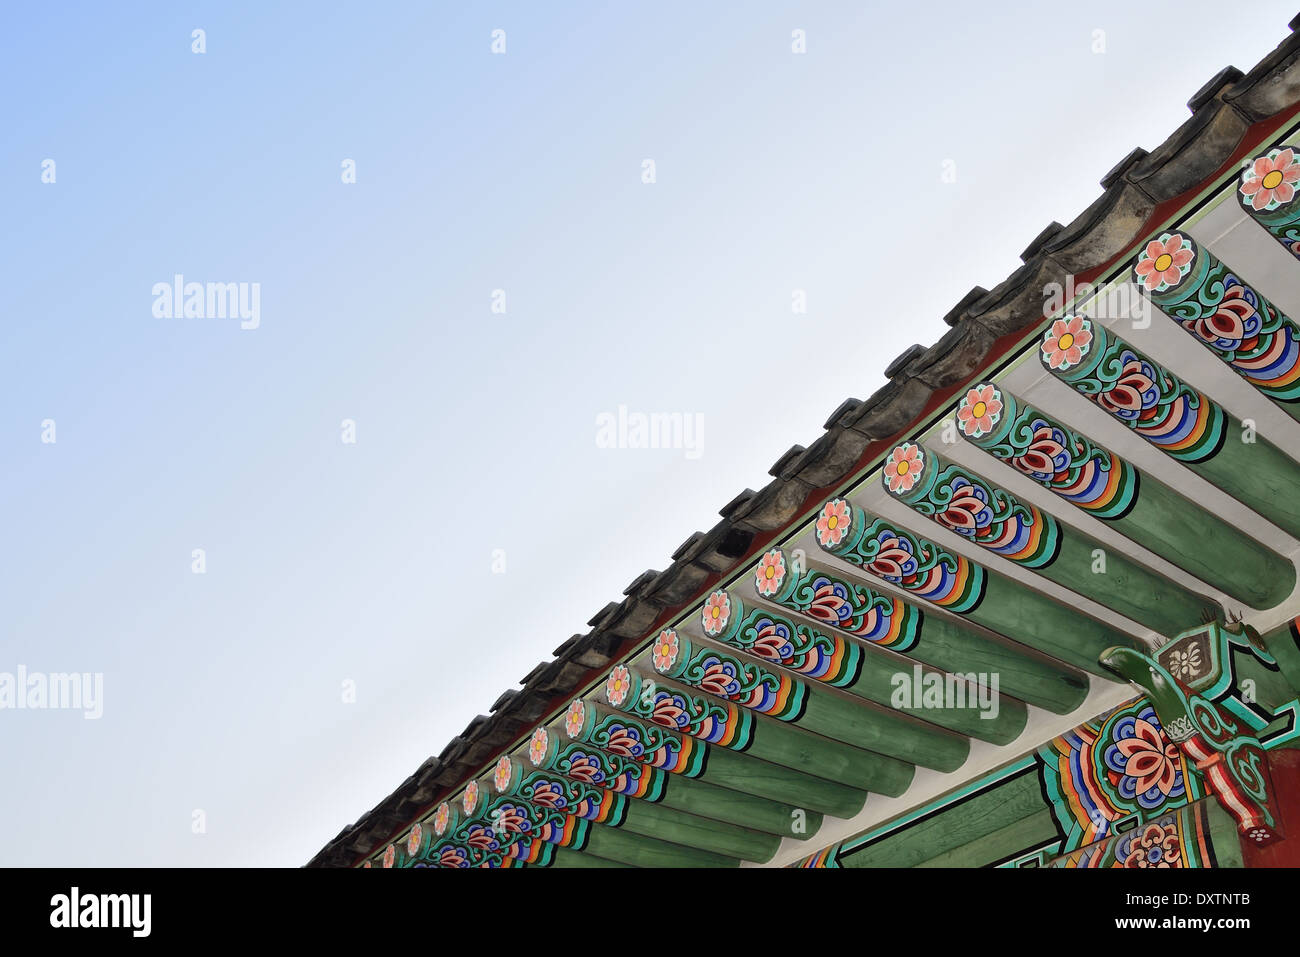 Detail of eaves in Gyeongbok Palace in Seoul, Korea - Stock Image